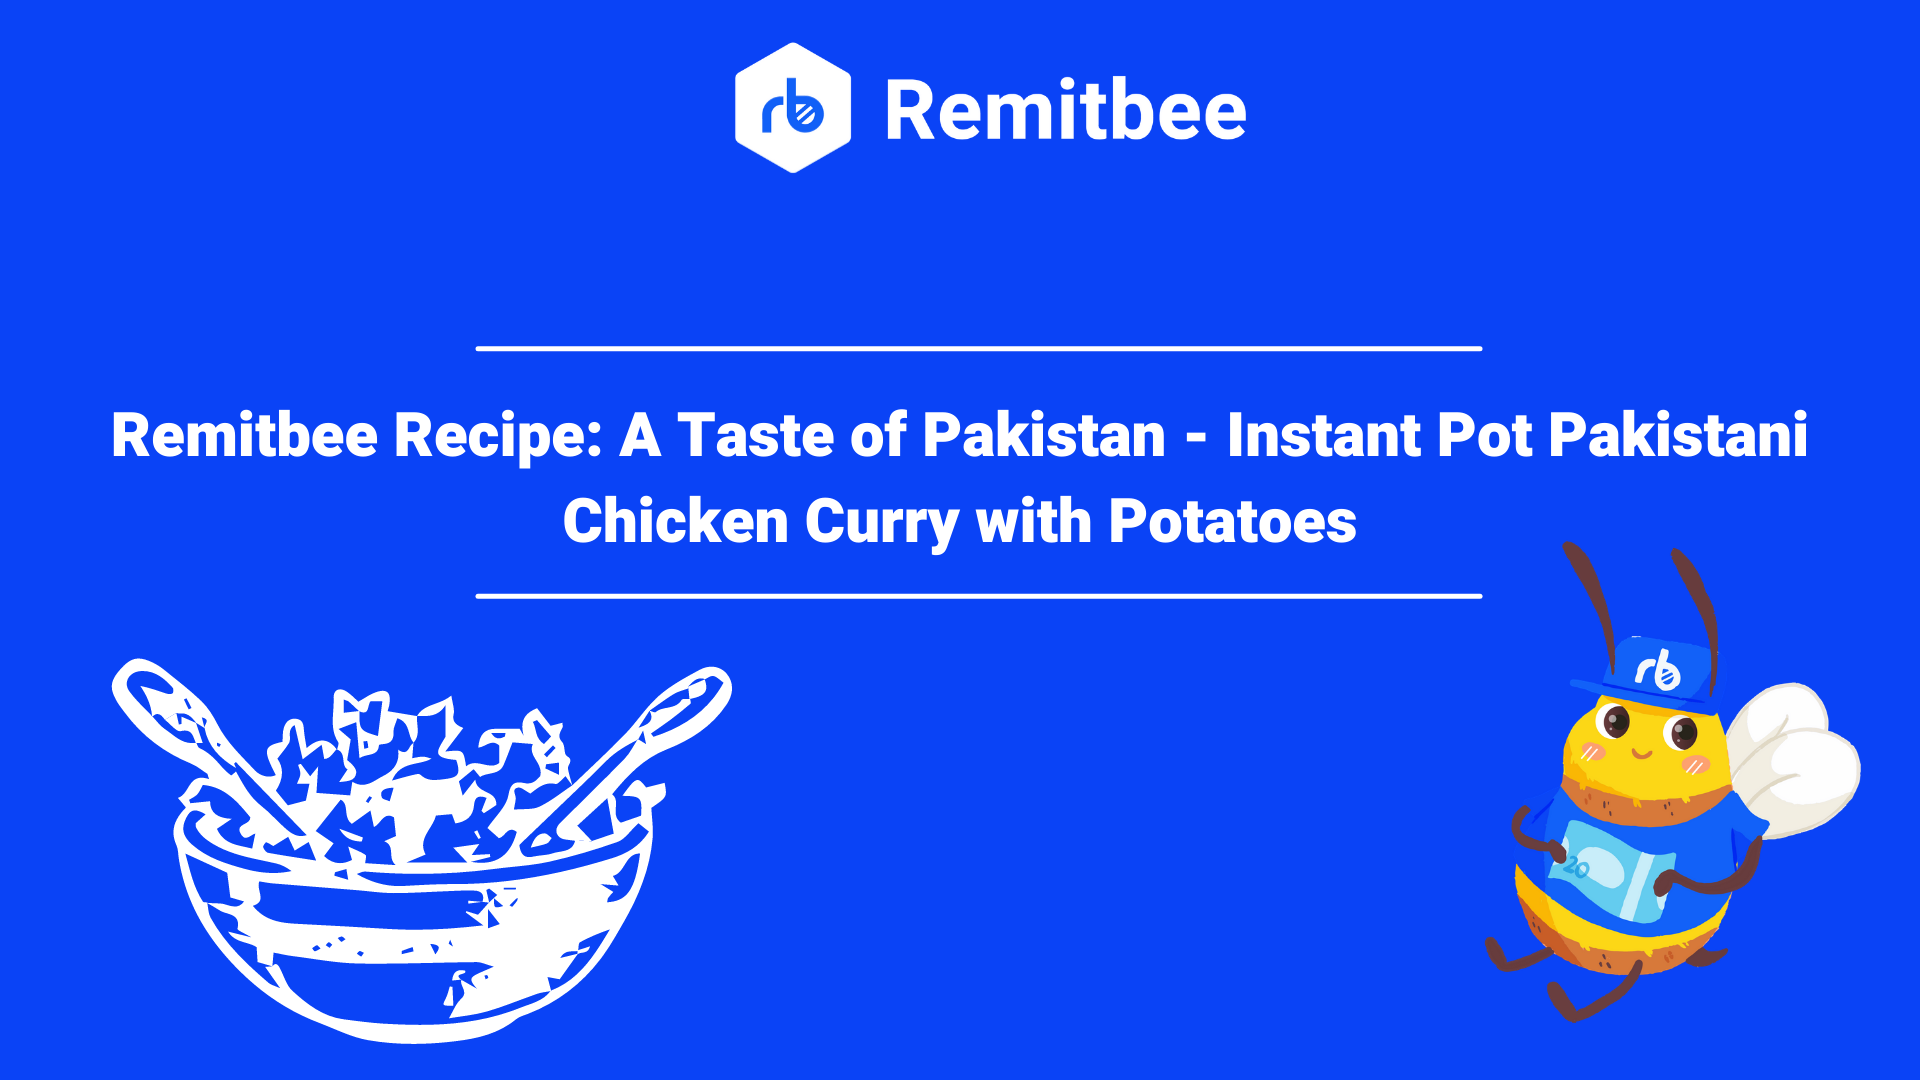 Remitbee Recipe: A Taste of Pakistan - Instant Pot Pakistani Chicken Curry with Potatoes